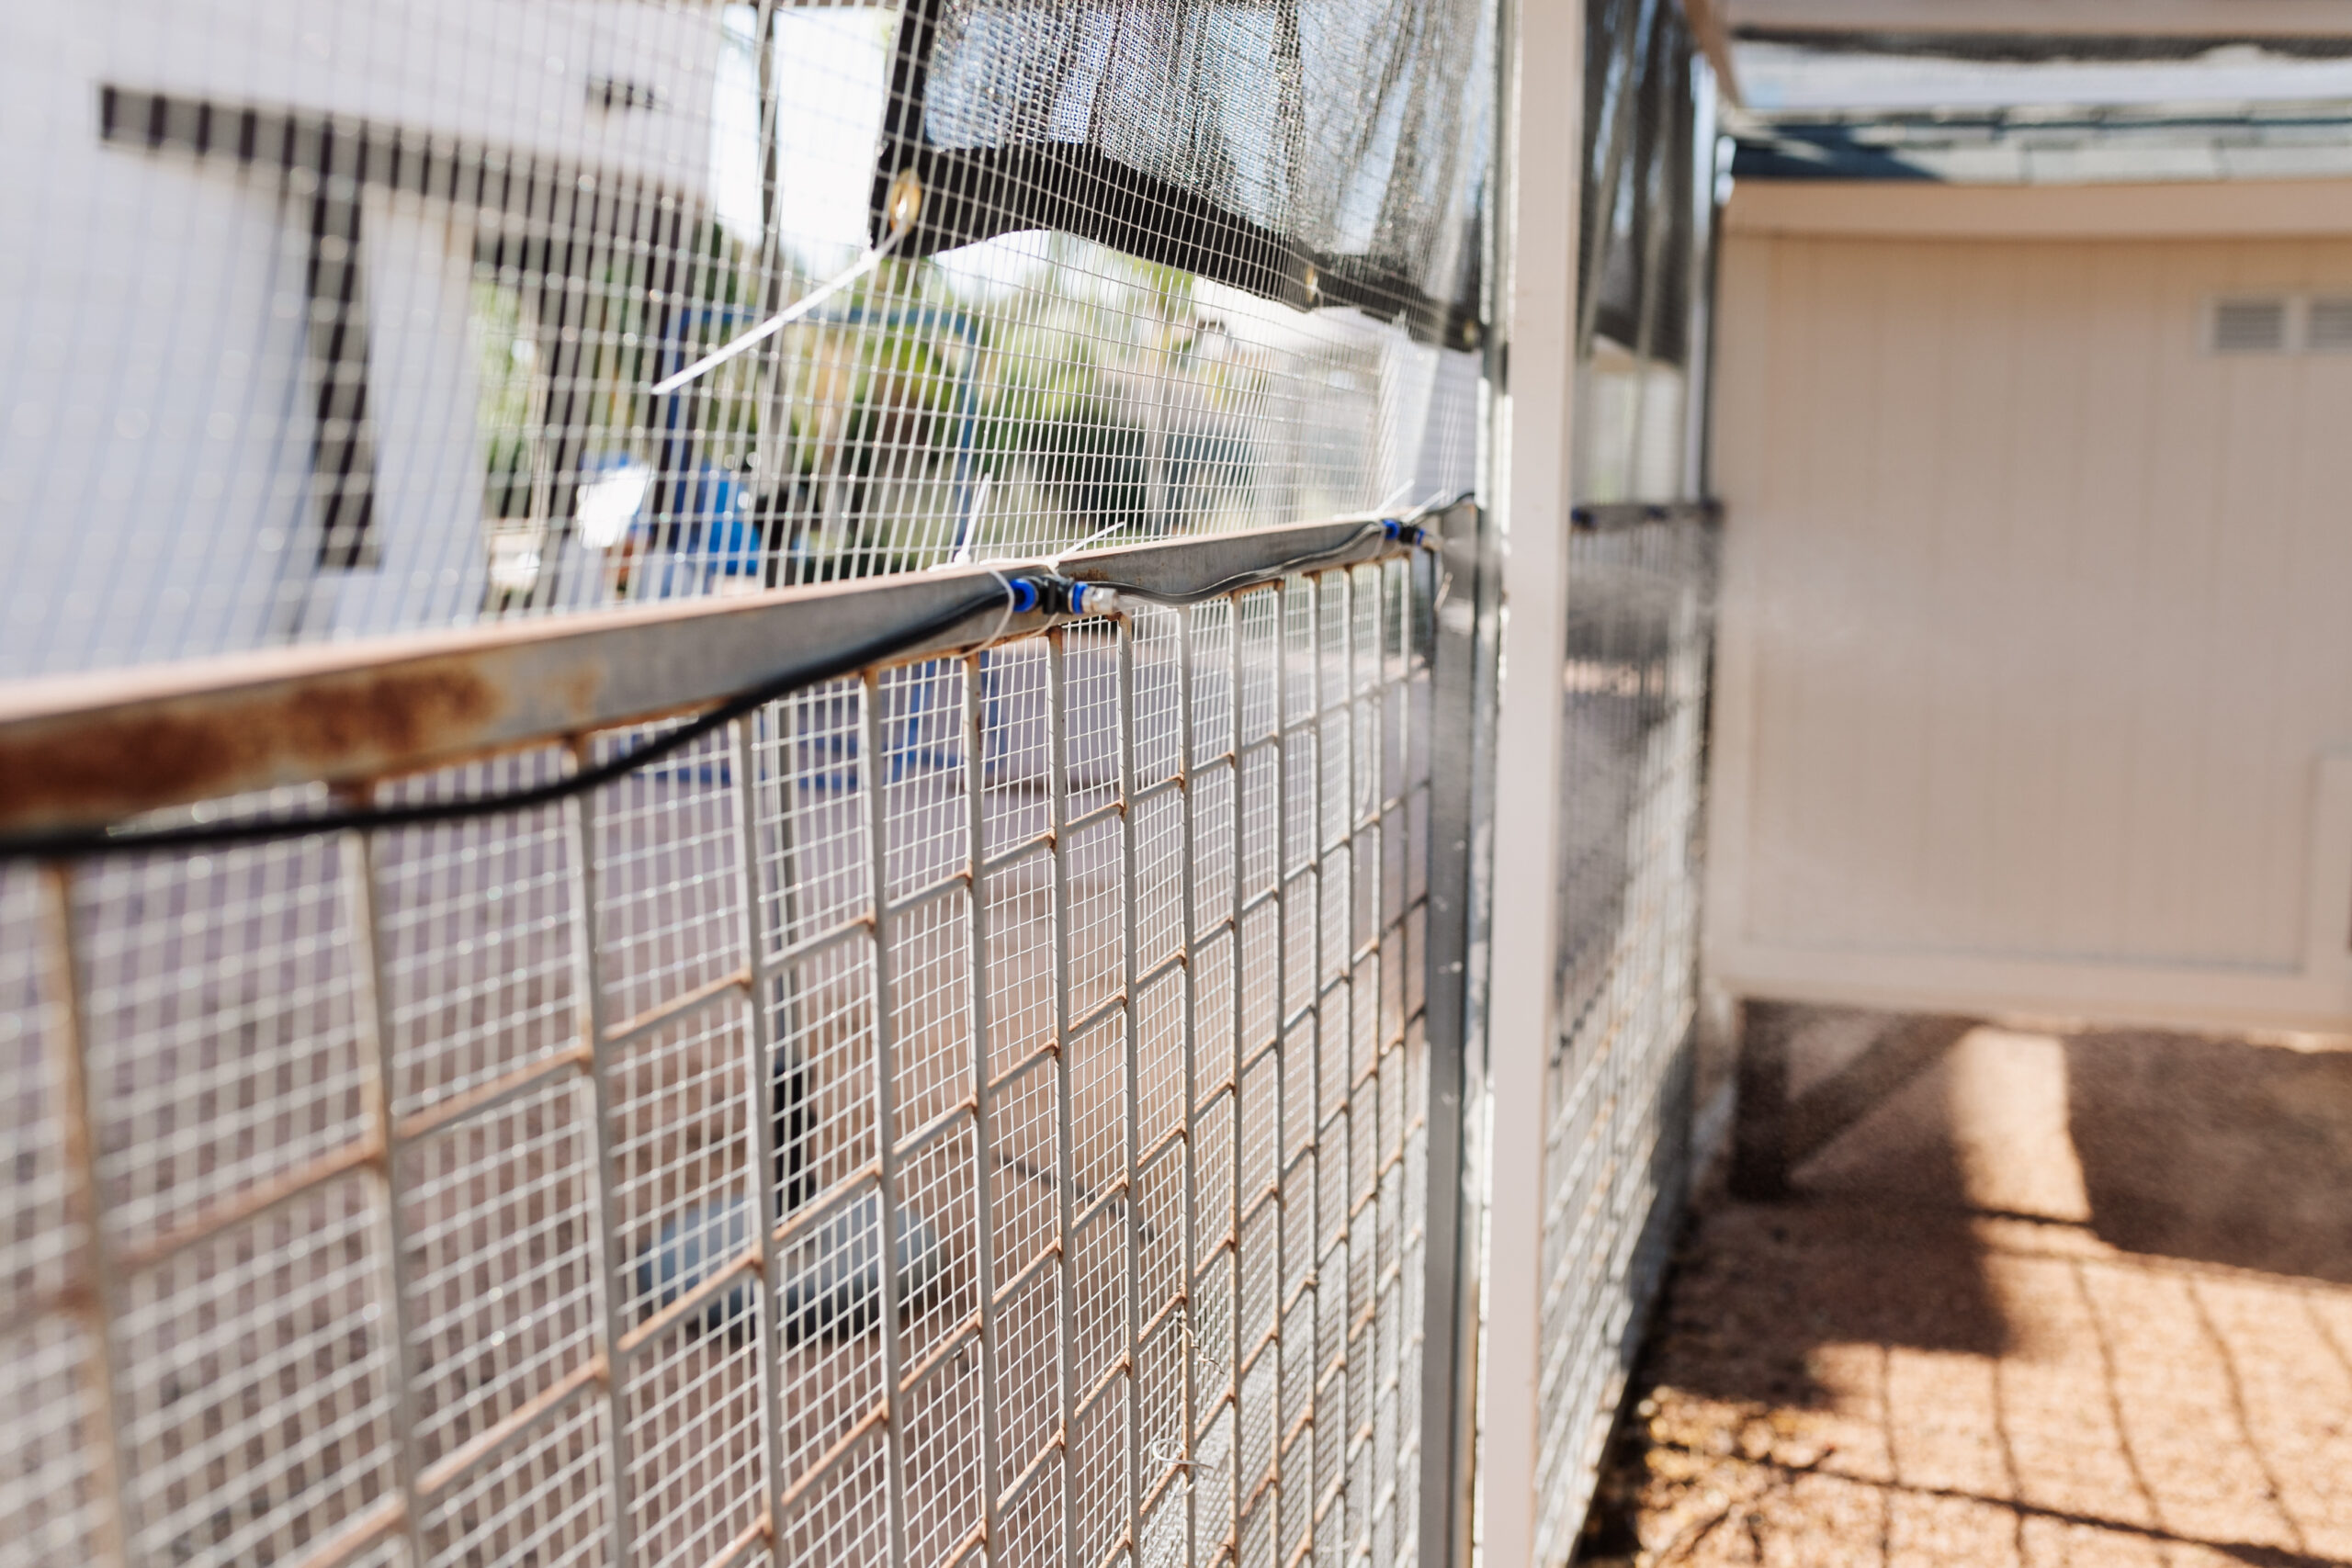 misters inside our desert chicken coop and run to keep them cool in the summer. #thelovedesignedlife #desertliving #desertchickens #backyardchickens